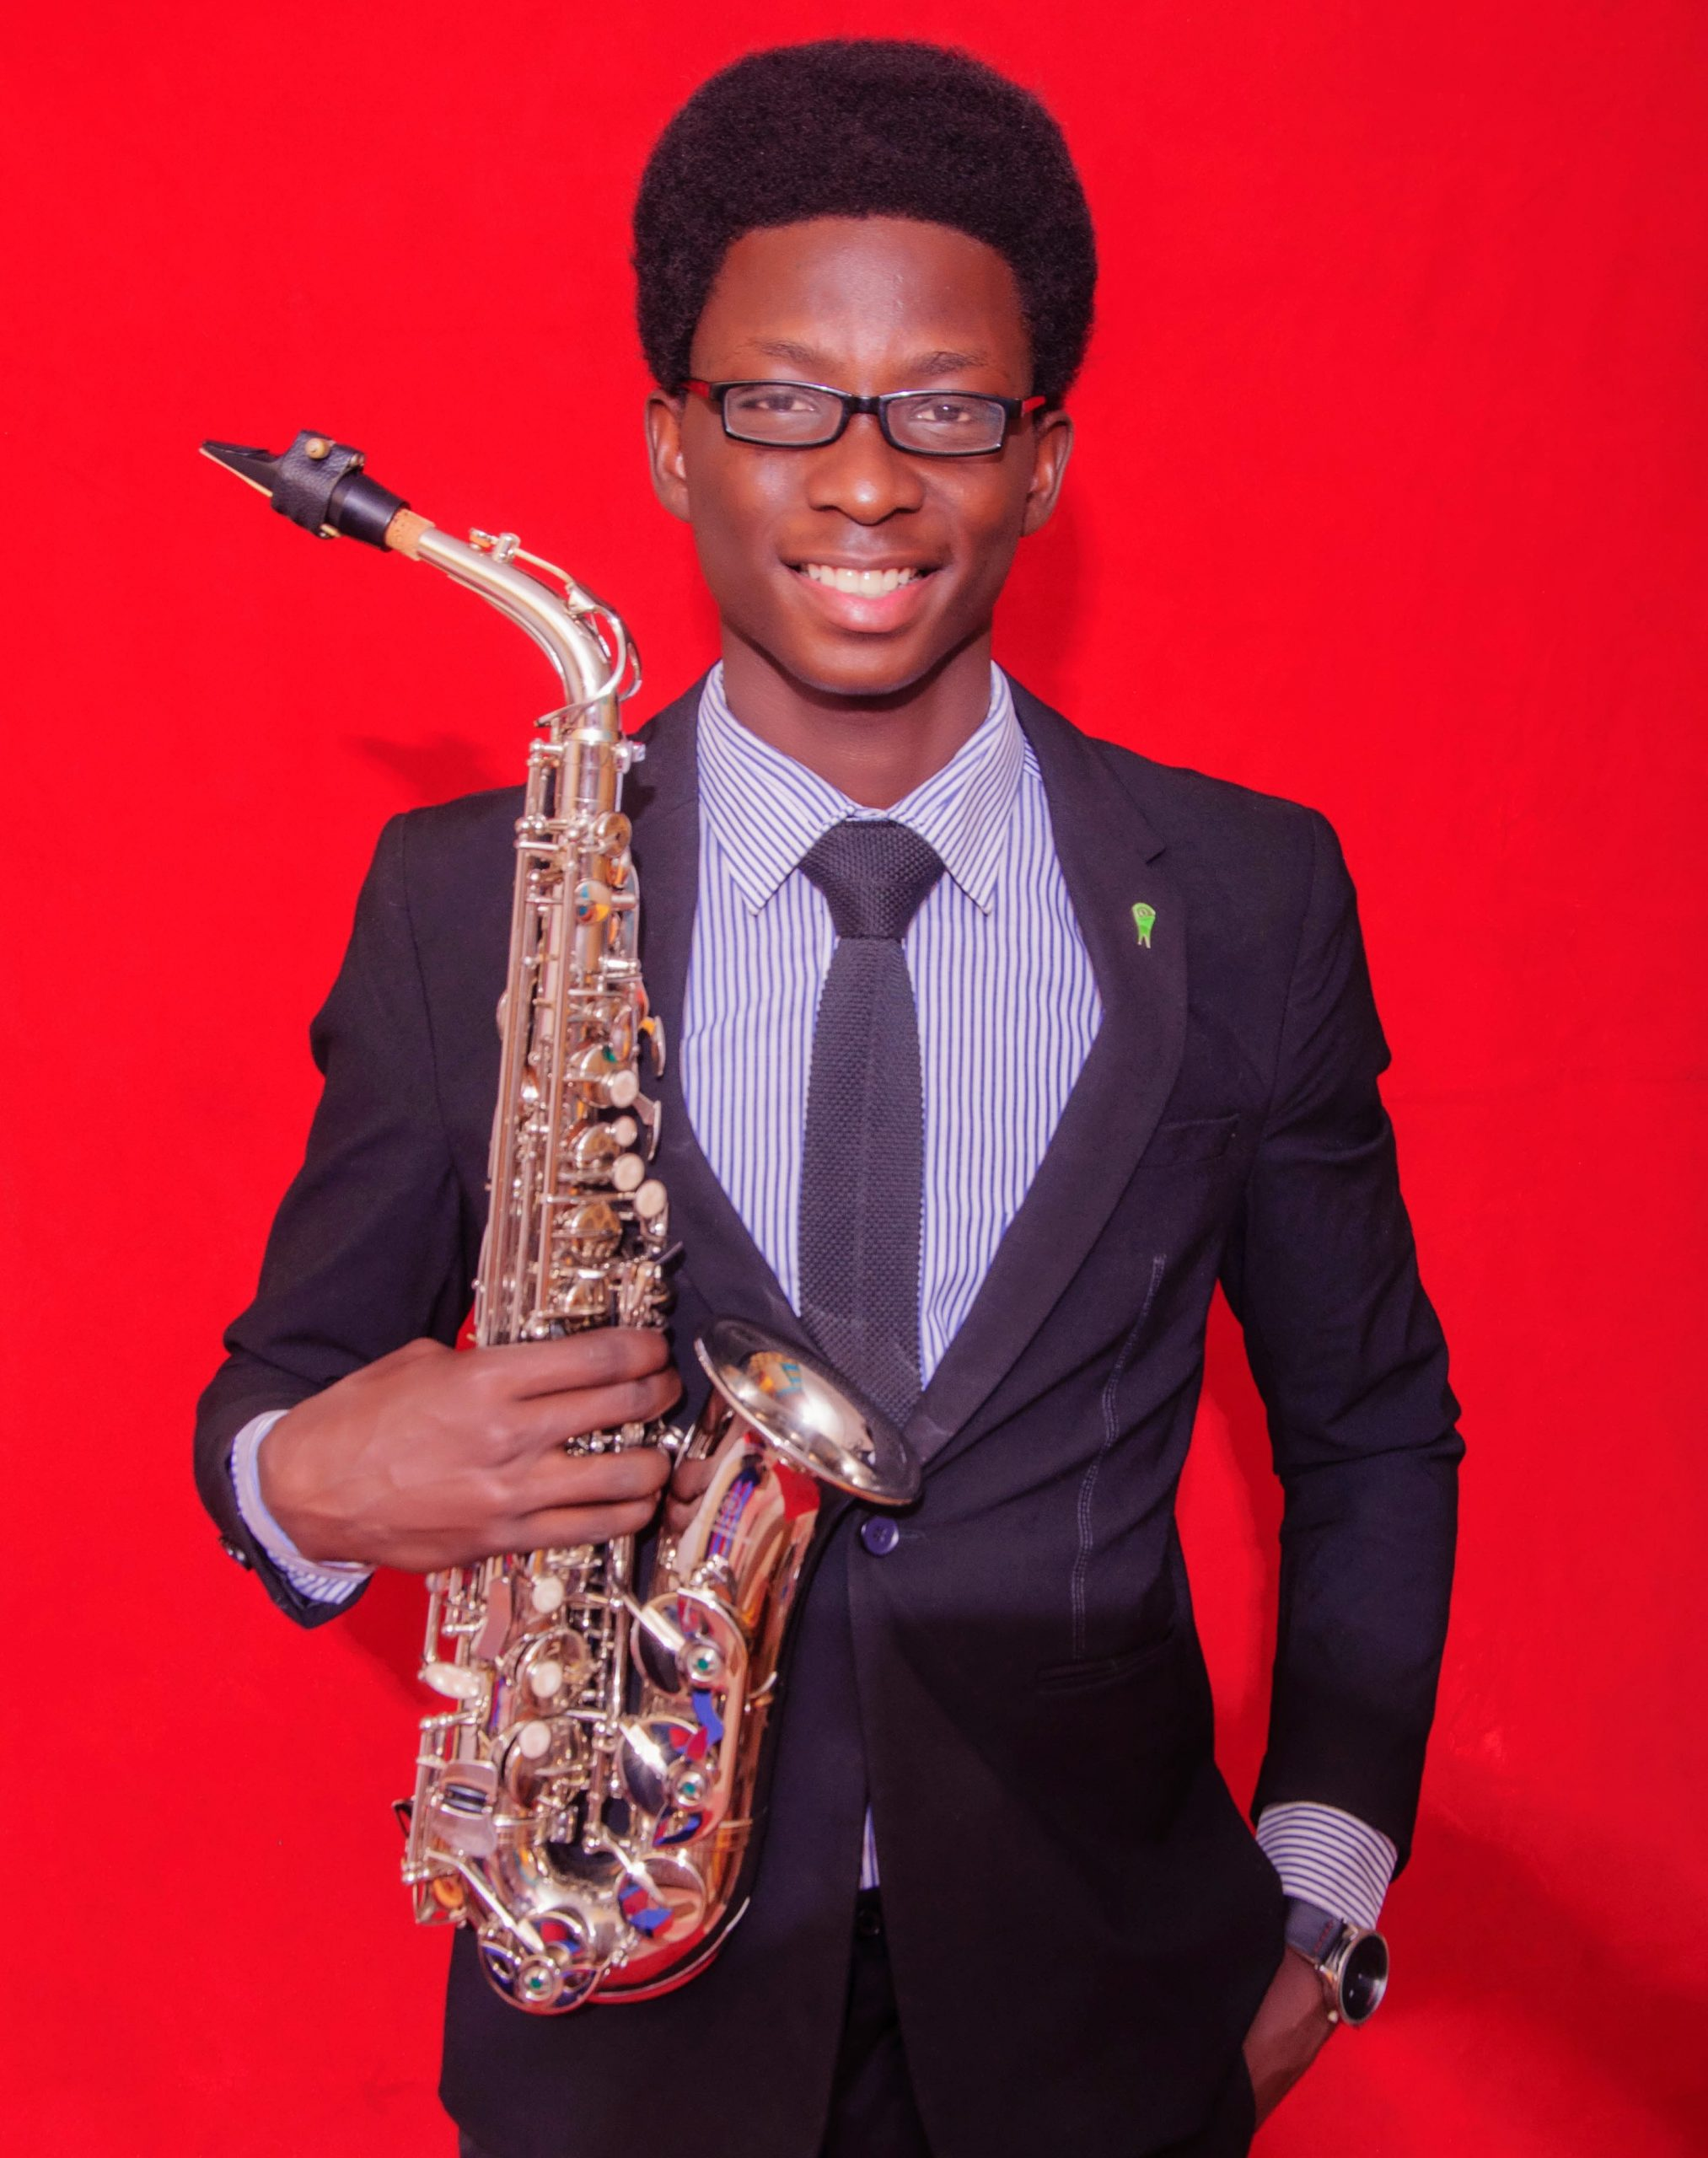 """Gospel Saxophonist """"Marvy Sax"""" In An Interview makes a point,""""Not Only Pastors are entitled to Salary & Honorariums, Gospel Music Ministers & Musicians should be appreciated & paid also"""""""